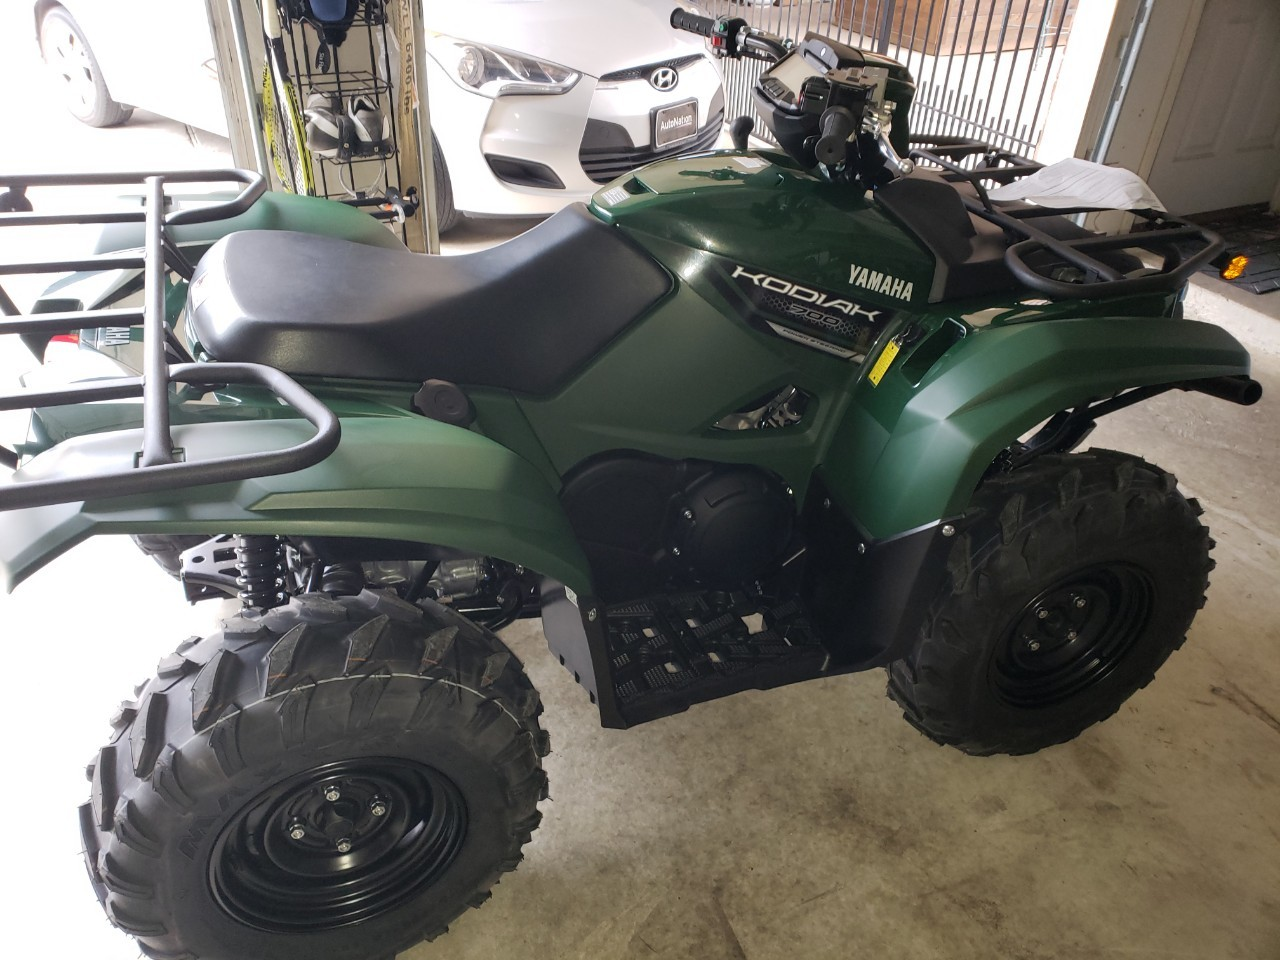 528553s For Sale: 61,267 528553s - ATV Trader